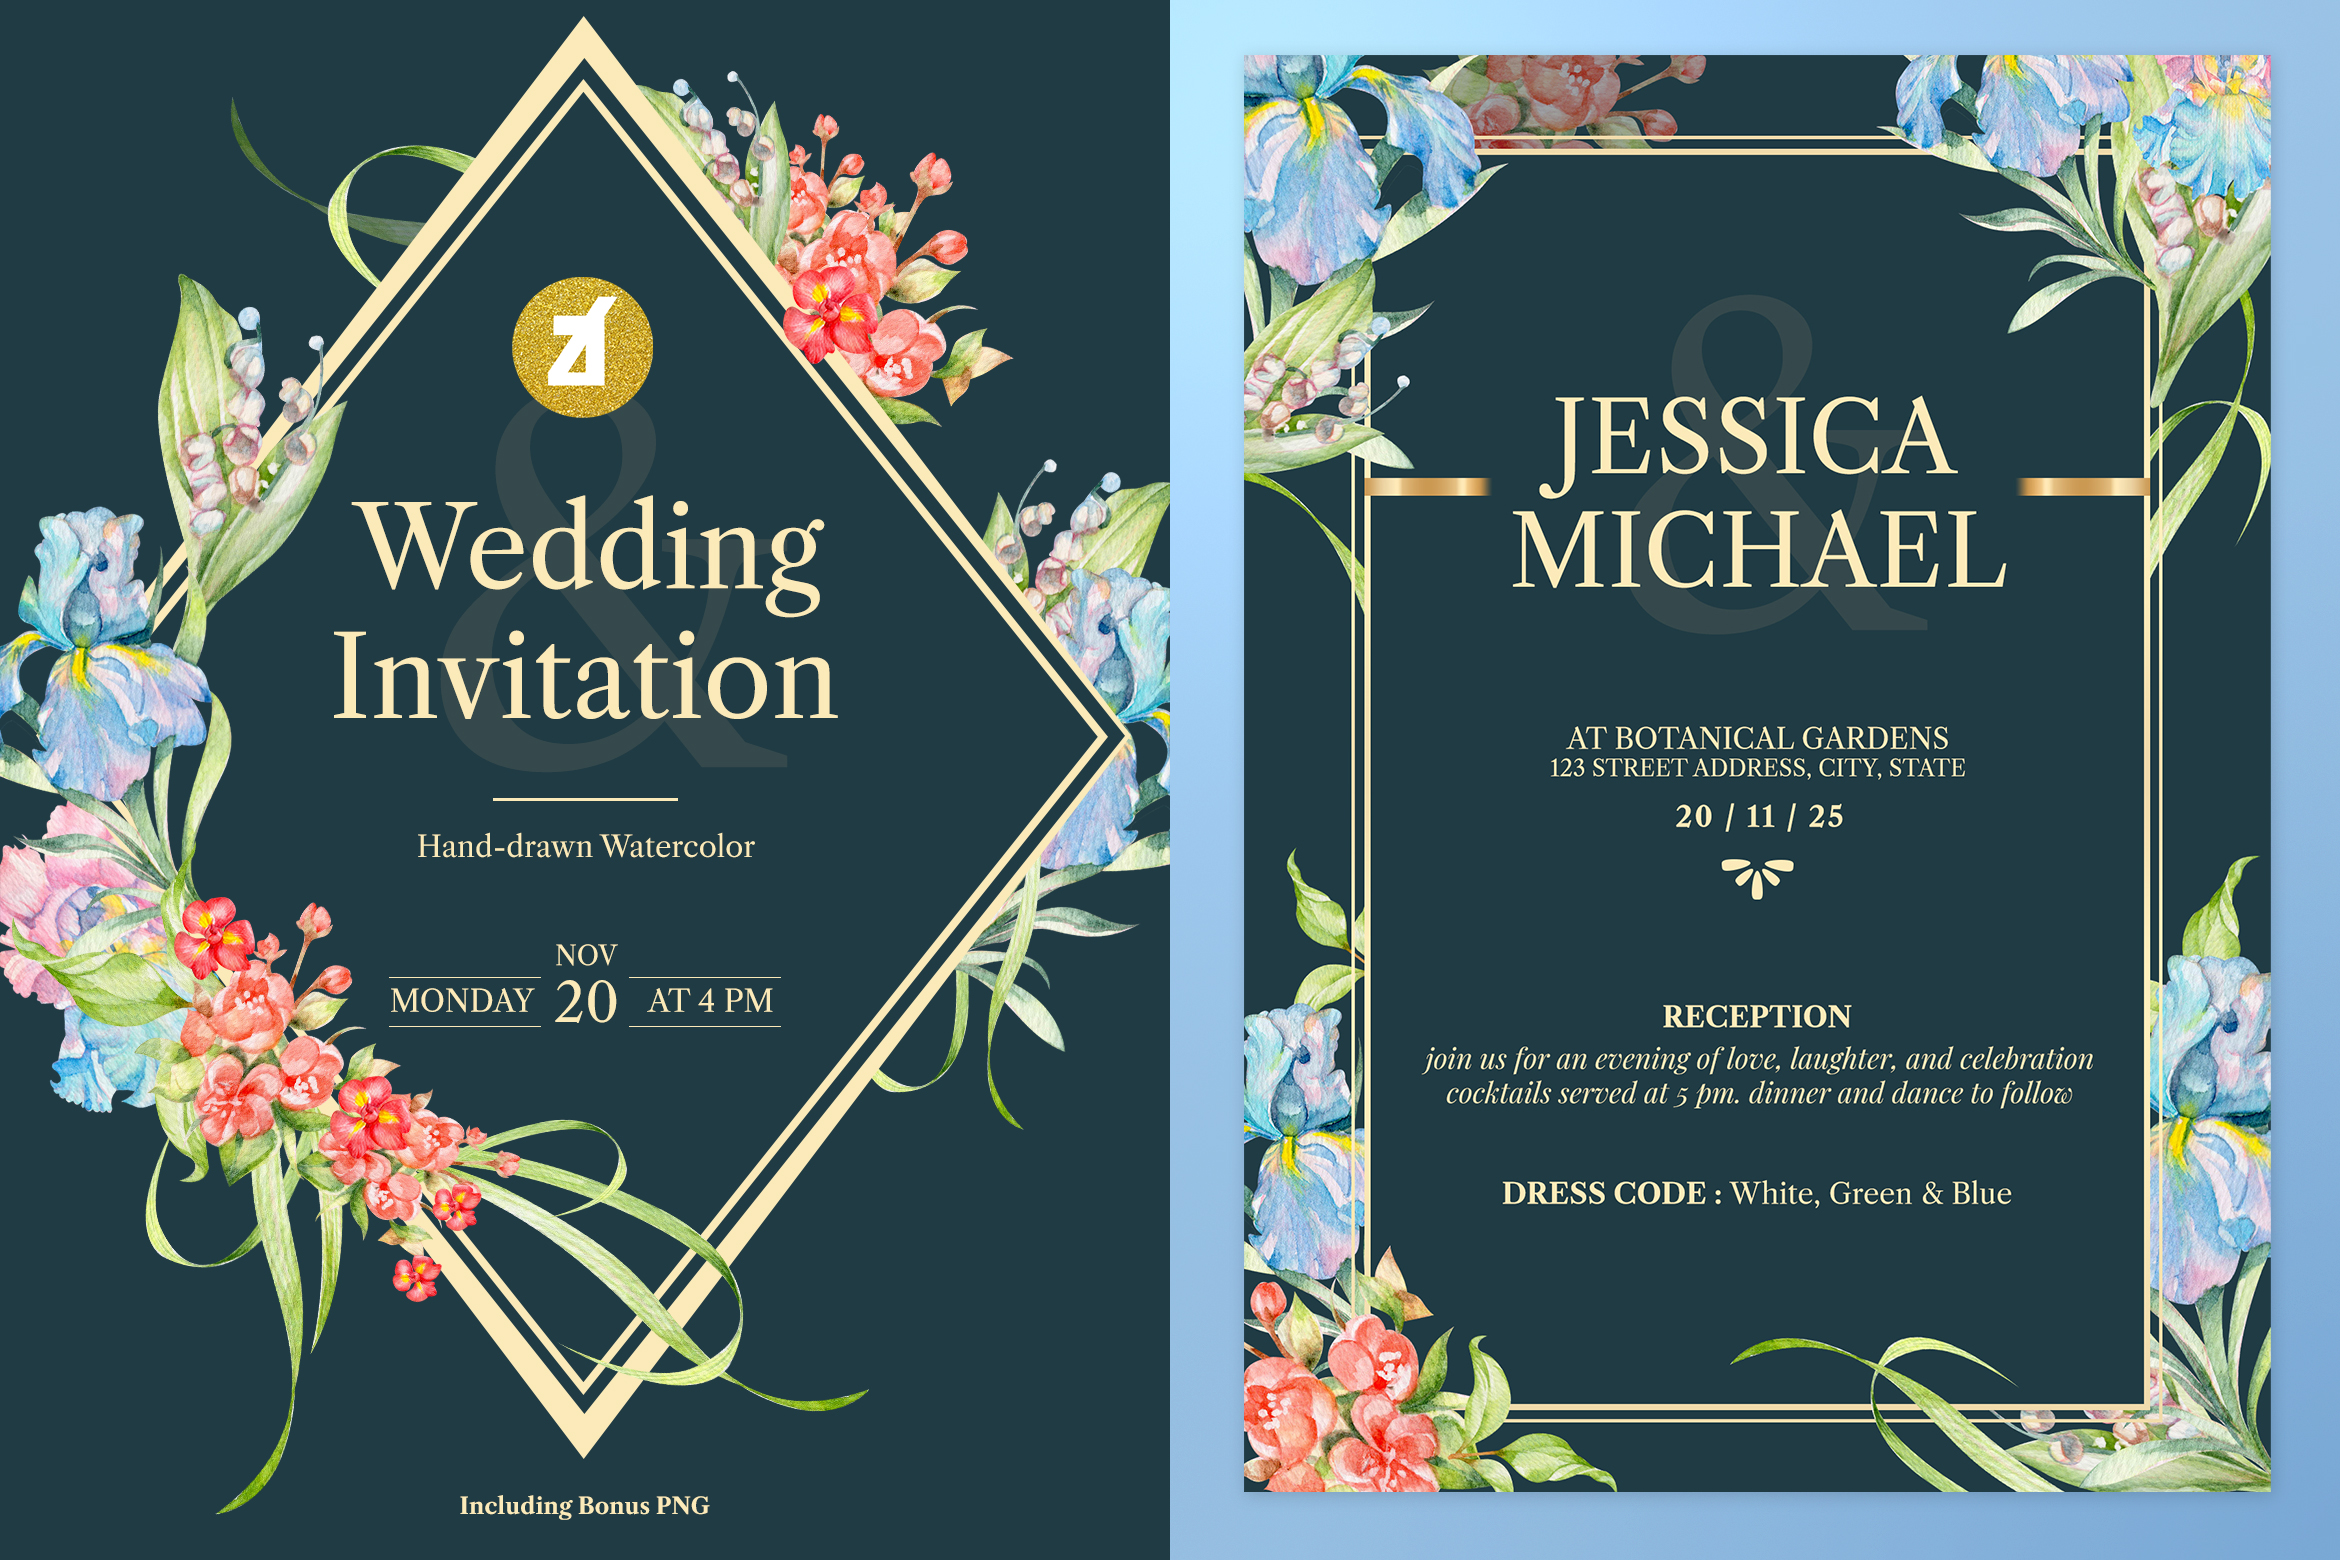 Background Wedding Card Graphic Design Free Svg Cut Files Create Your Diy Projects Using Your Cricut Explore Silhouette And More The Free Cut Files Include Svg Dxf Eps And Png Files